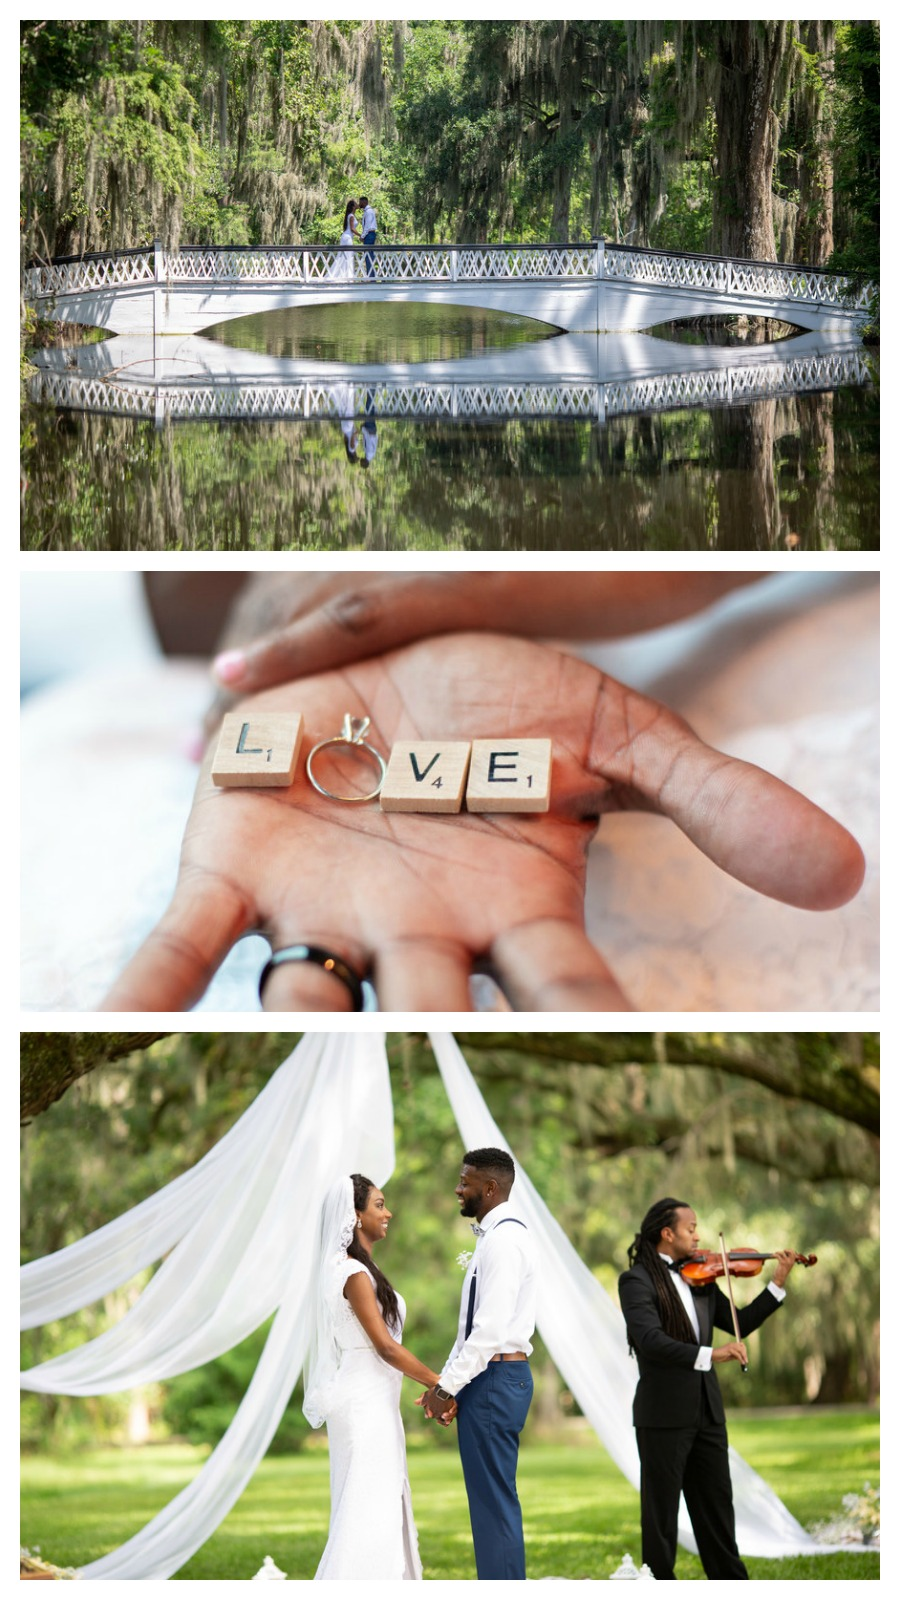 Christina and Keith: Intimate Outdoor Elopement at Magnolia Plantation | Palmetto State Weddings | Kevin Maurice Photography | Charleston elopement | small Charleston wedding venue | Charleston SC wedding